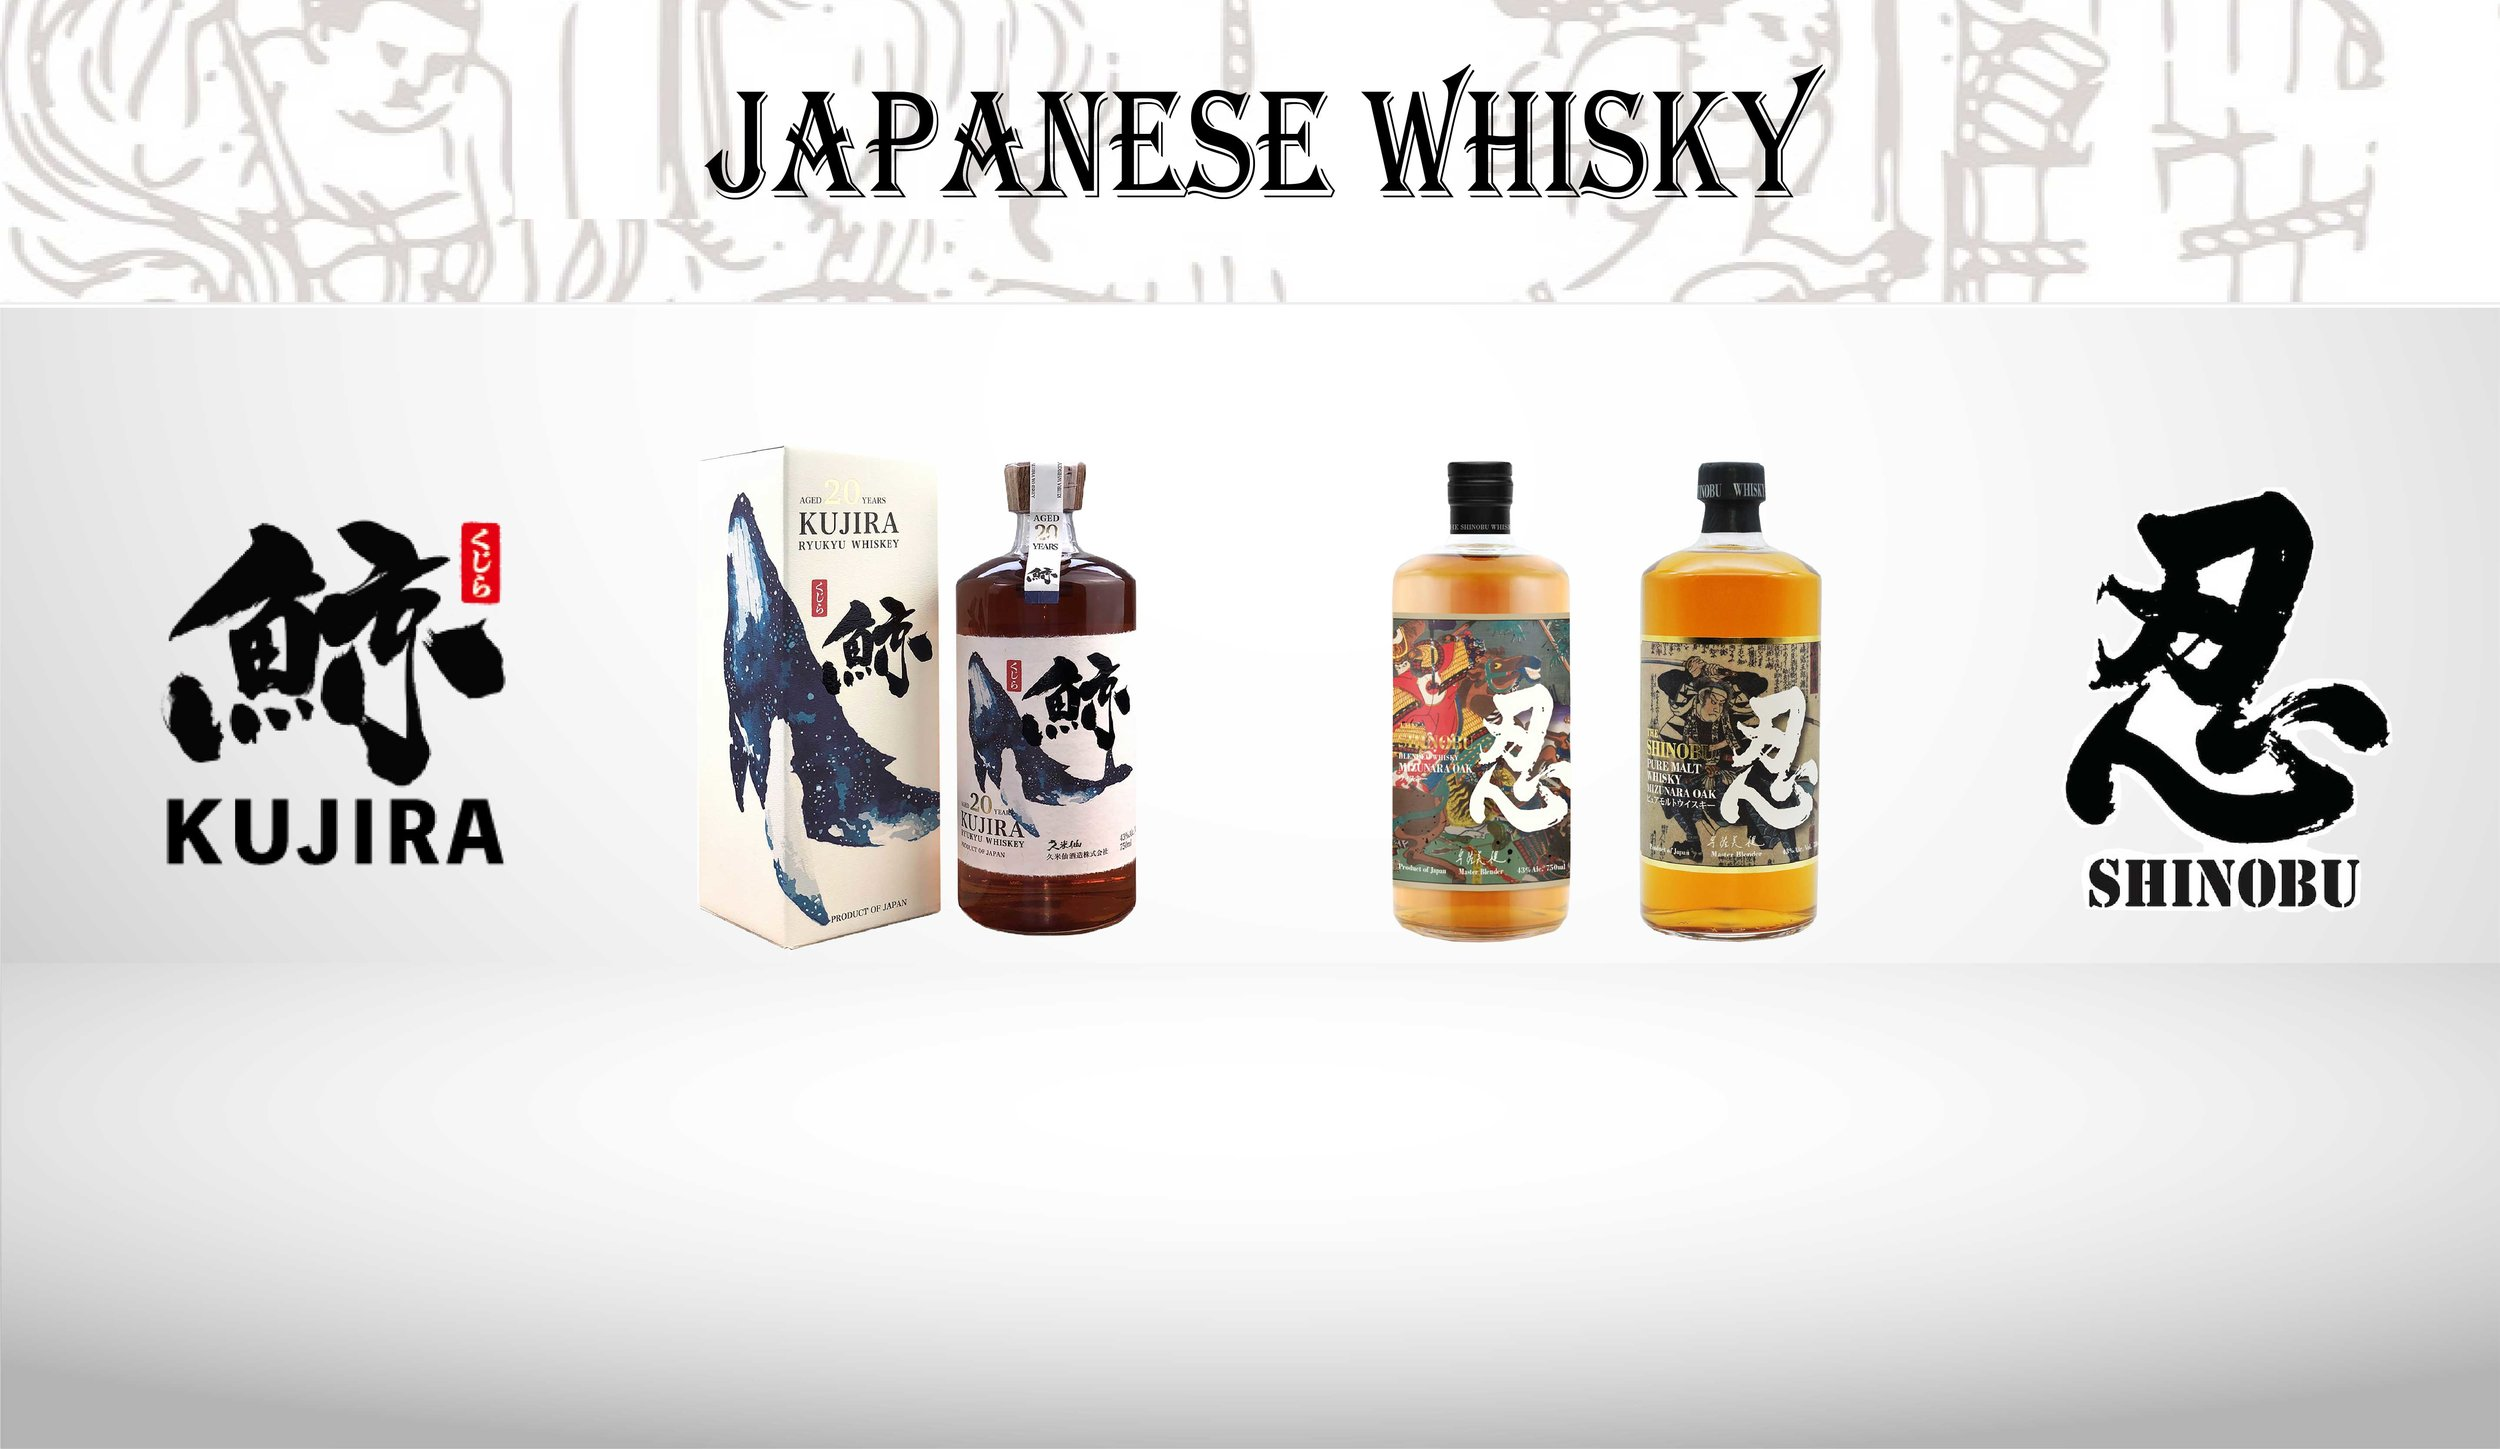 Japanese Whisky_S-01.jpg